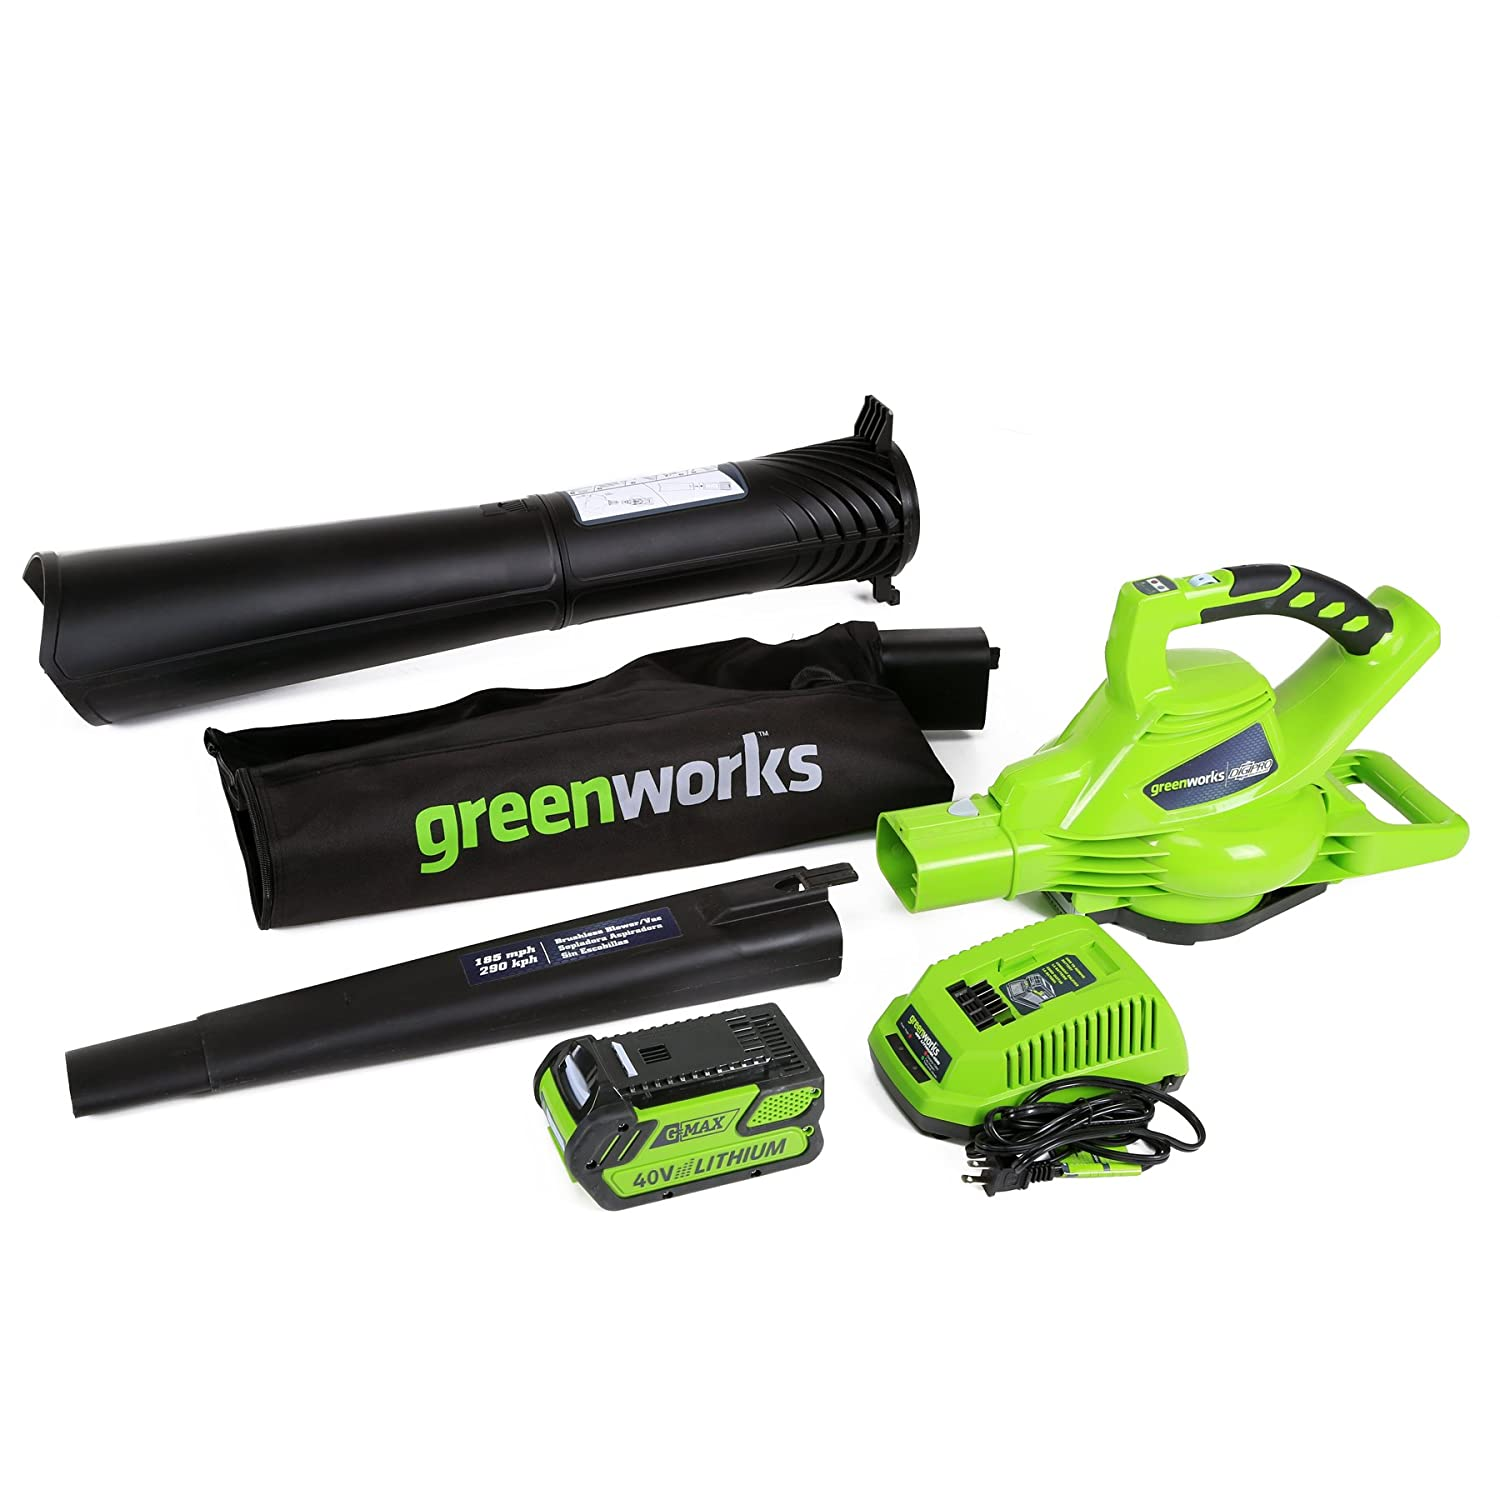 Greenworks 40V 185 MPH Variable Speed Cordless Blower